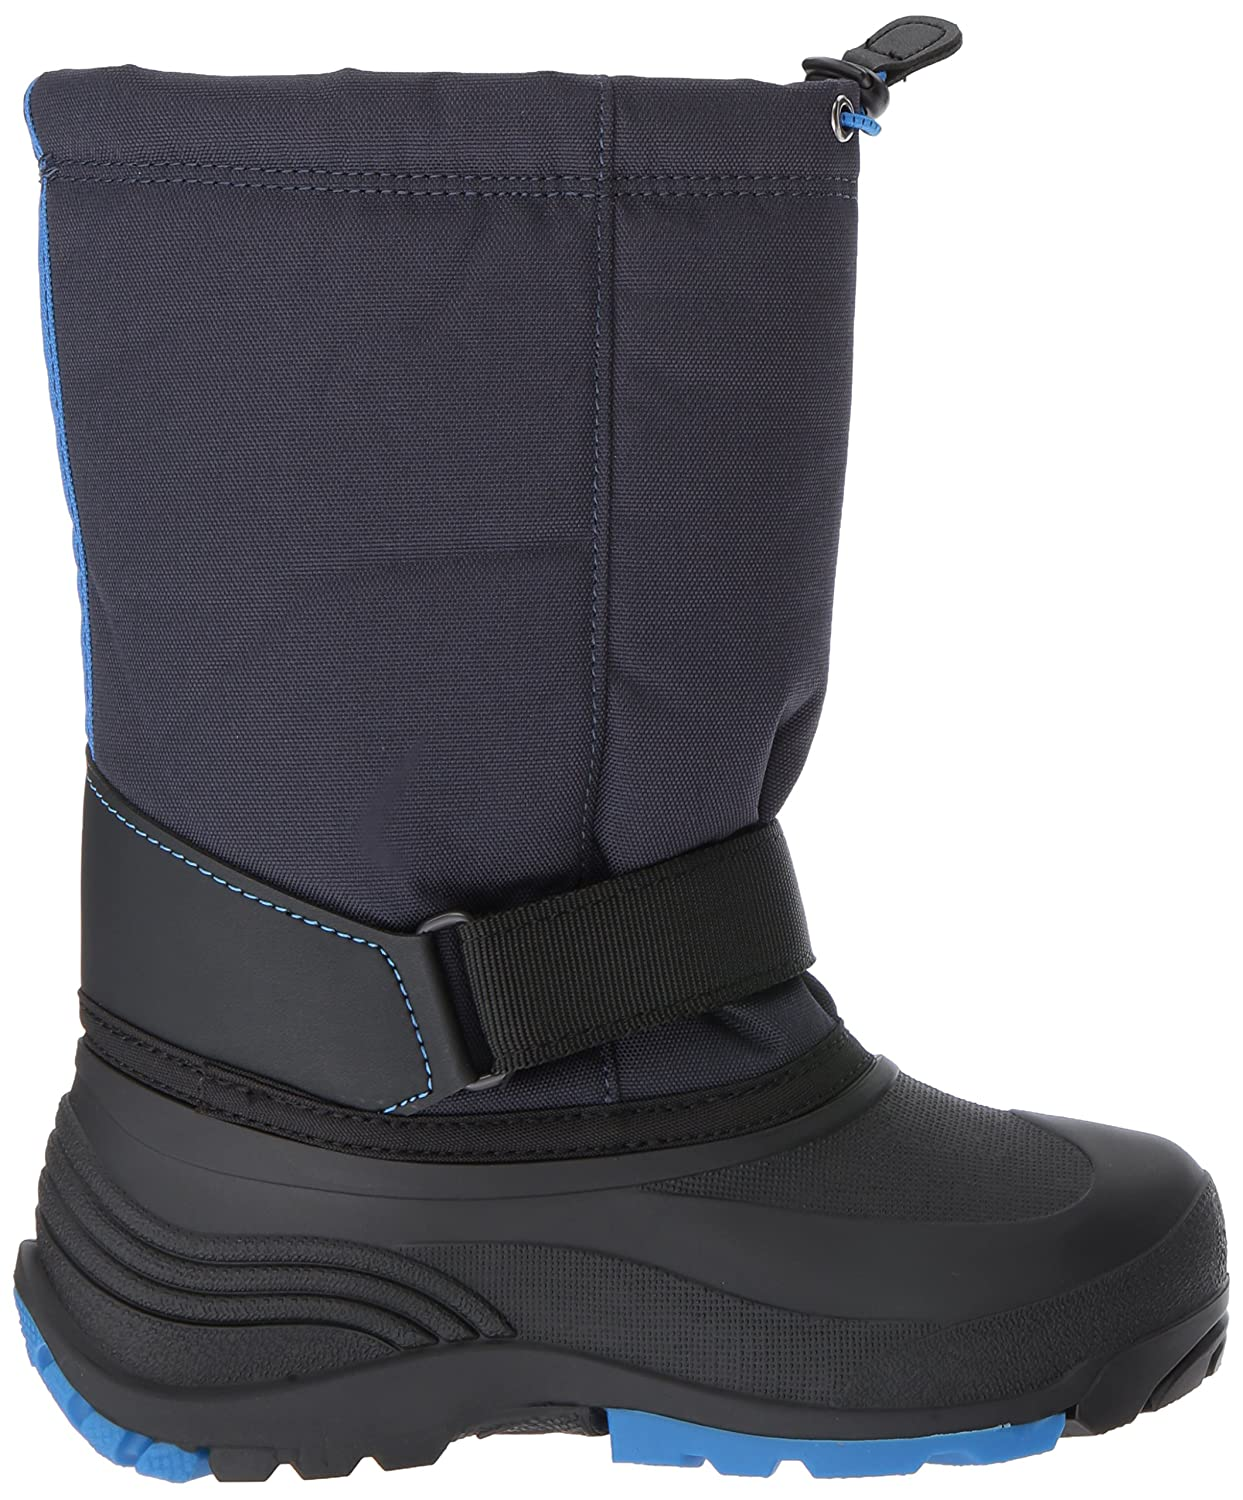 Kamik Boys' Boys' Boys' Rocket Snow Stiefel, Navy Navy, 1 Medium US Little Kid 04463e